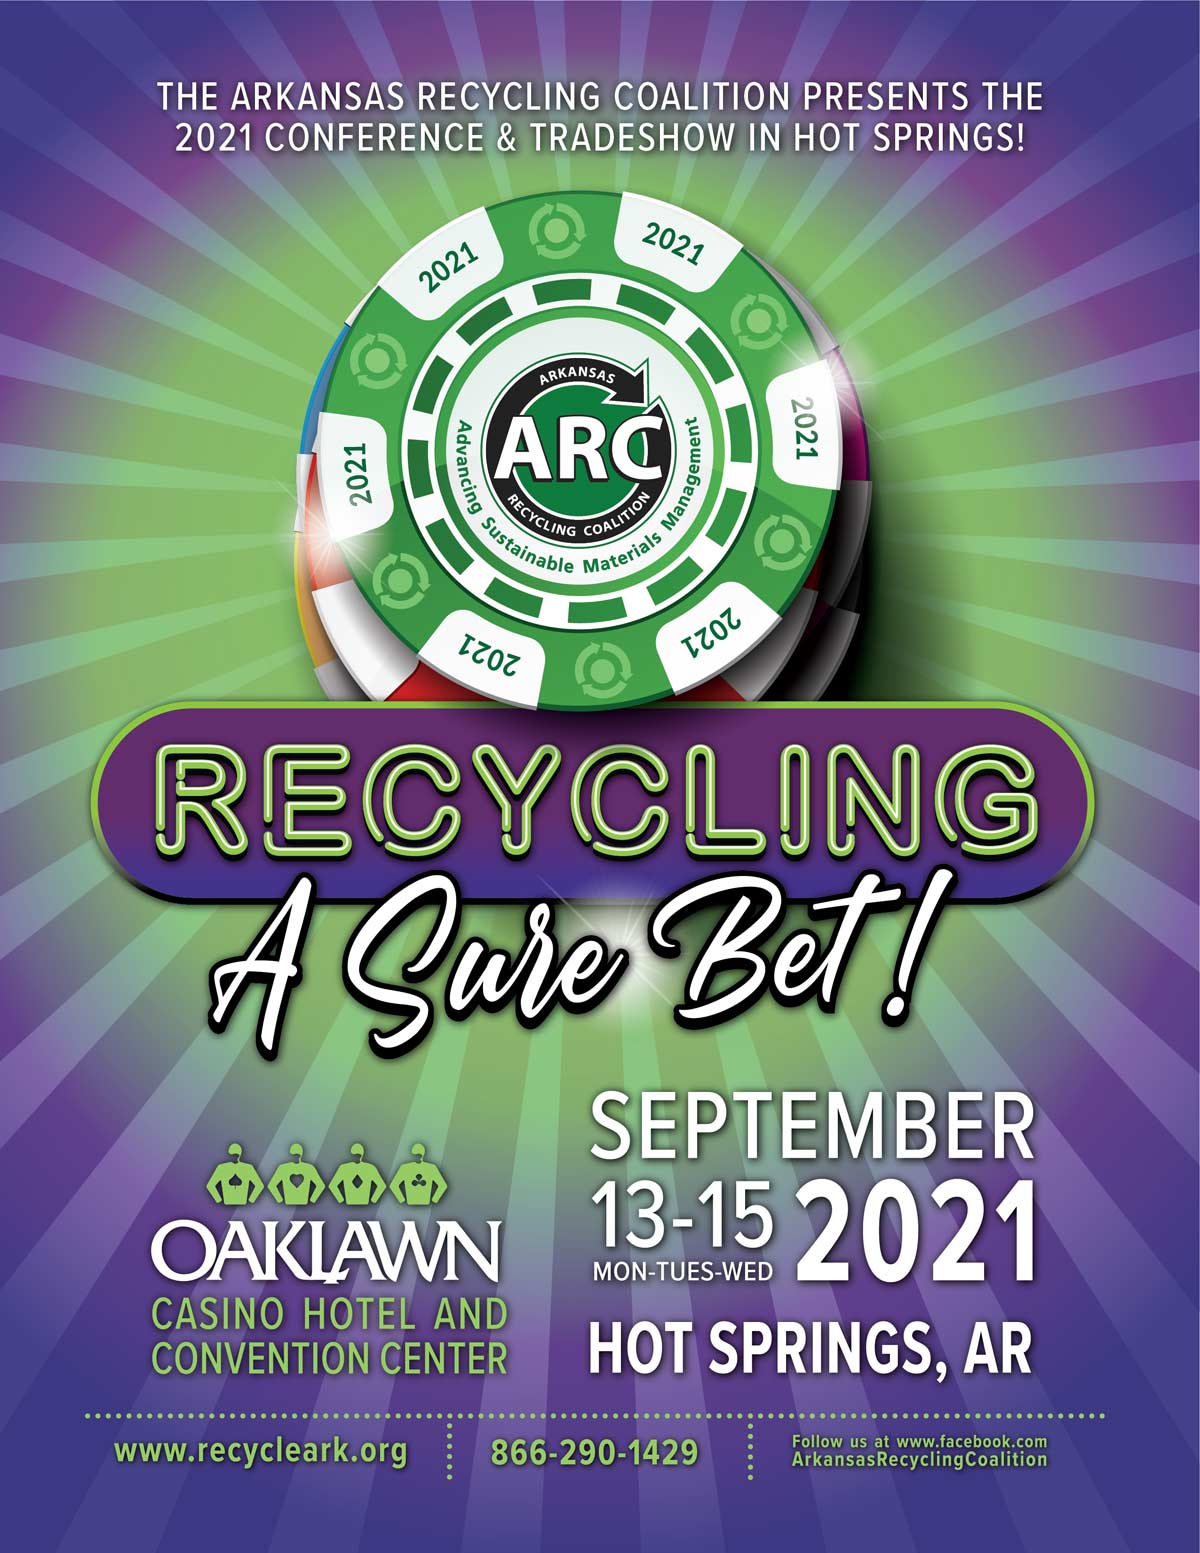 Arkansas Recycling Coalition 2021 Conference